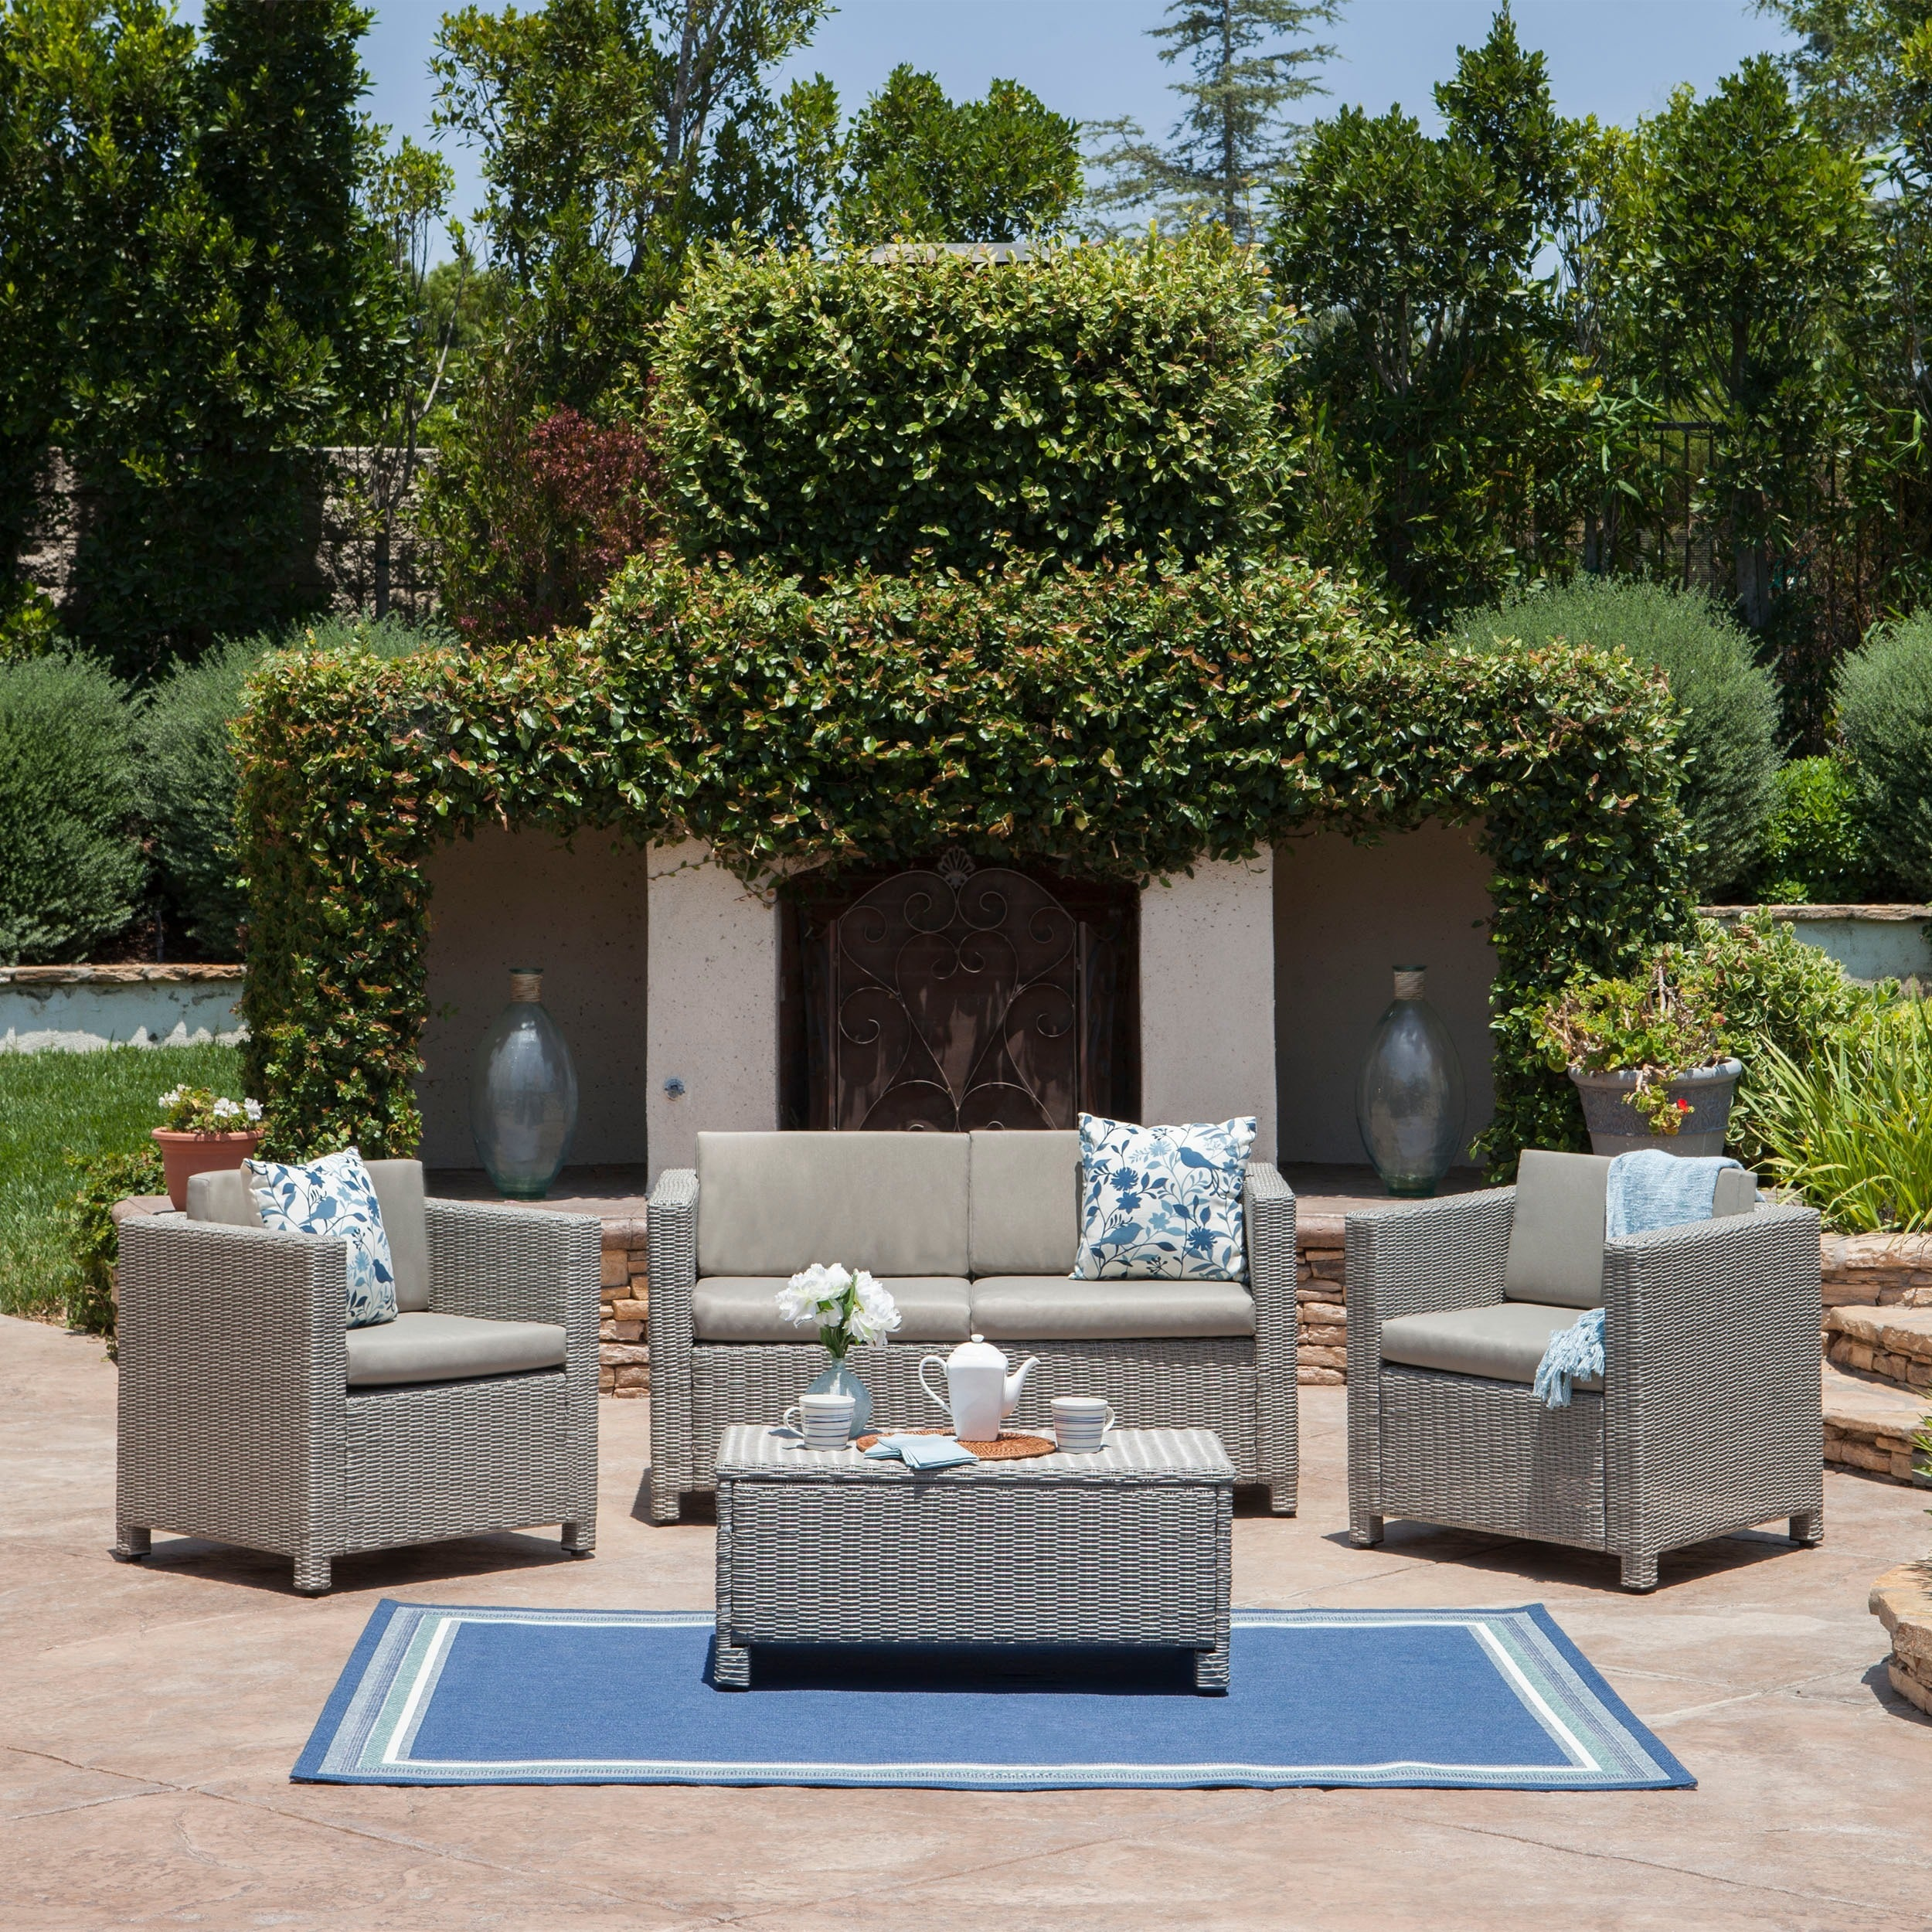 Puerta Outdoor 4 Piece Sofa Set By Christopher Knight Home On Free Shipping Today 6518668